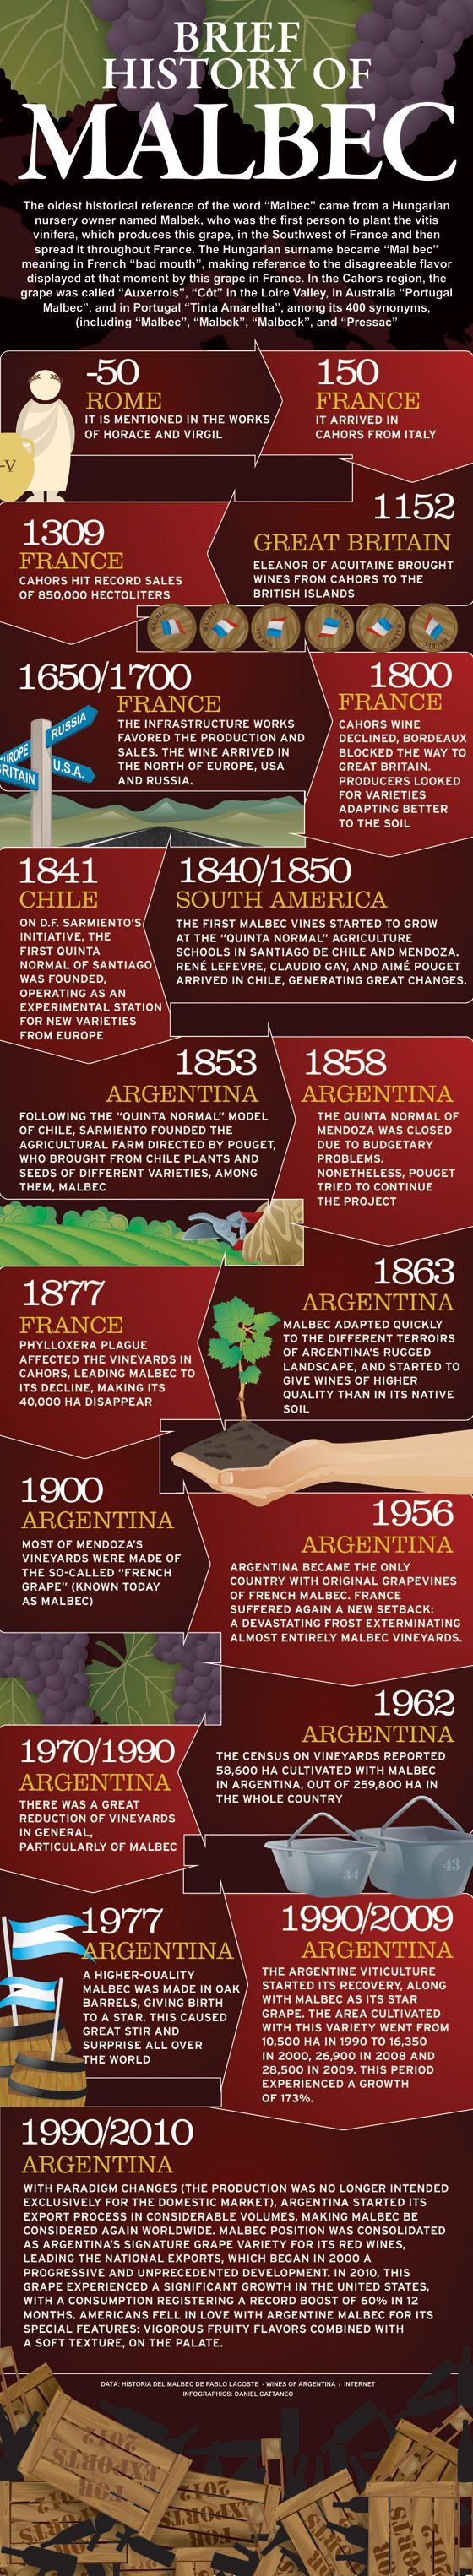 Historia Concisa de la uva Malbec | WineSur - October 9, 2013 #vino #wine